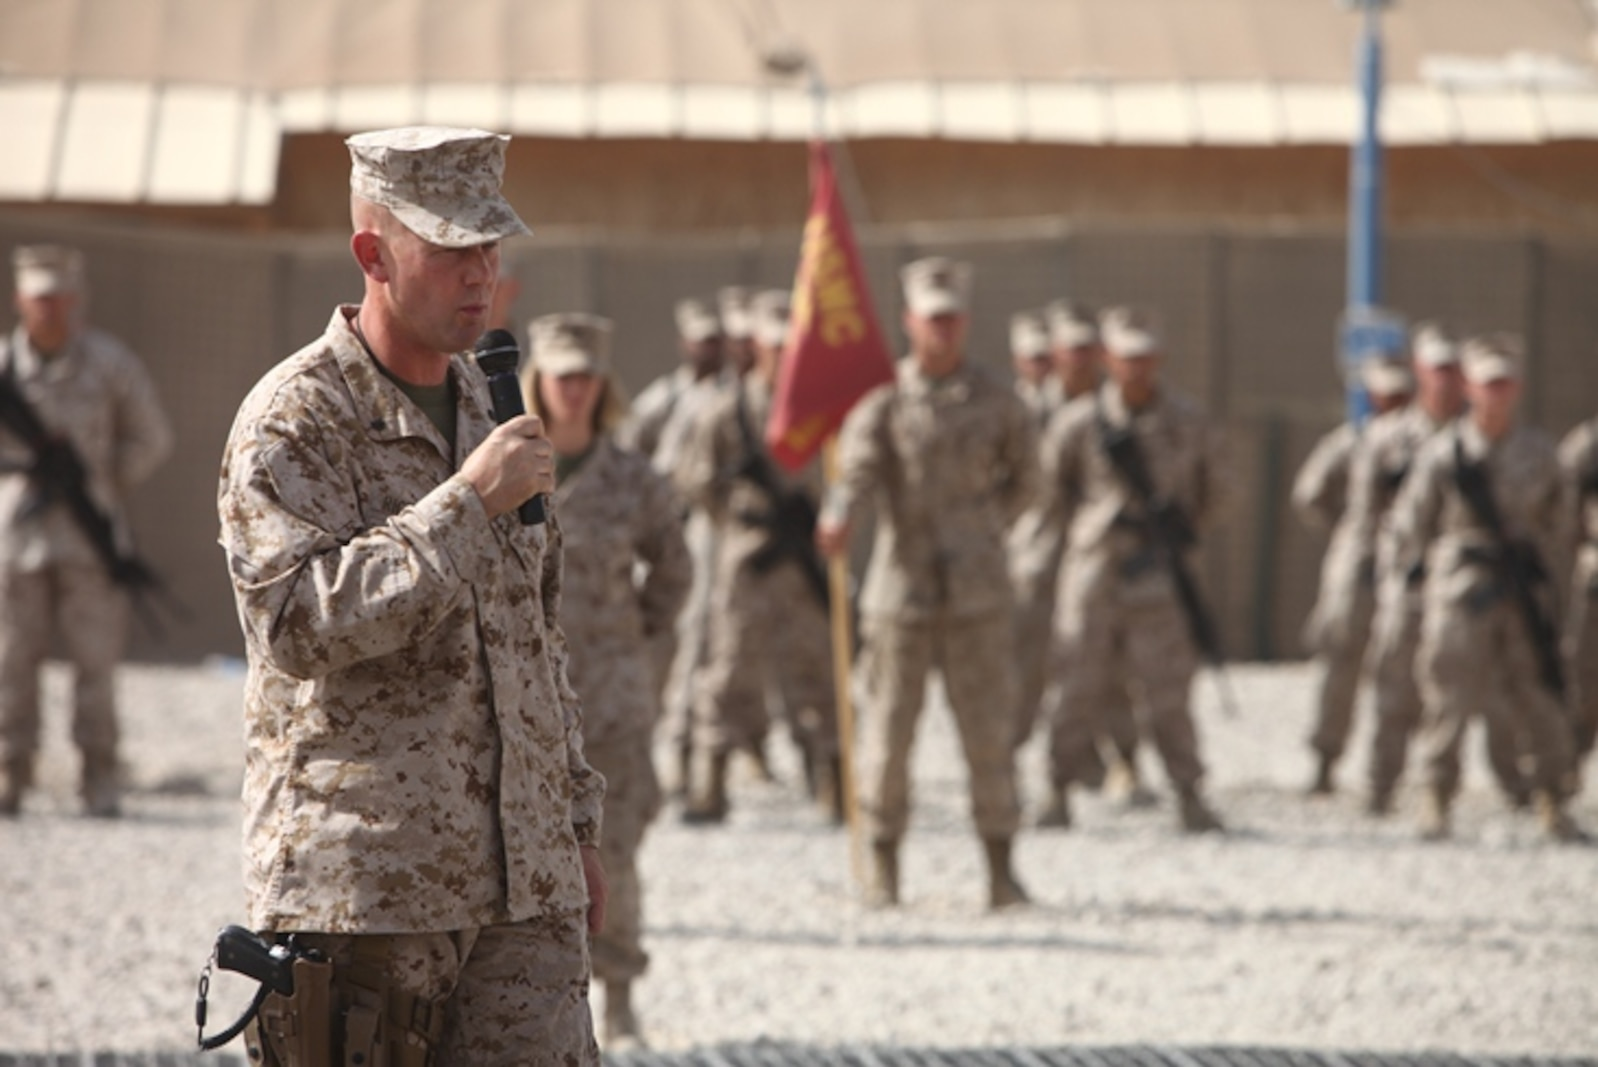 """Lt. Col. Christian Richardson, commanding officer, 1st Maintenance Battalion (-) Reinforced, 1st Marine Logistics Group (Forward) speaks to members and guests during a color casing ceremony at Camp Leatherneck, Afghanistan, Aug. 23. """"Being able to take on this challenging mission of providing tactical logistics support throughout the battle space has been absolutely tremendous,"""" said Richardson."""